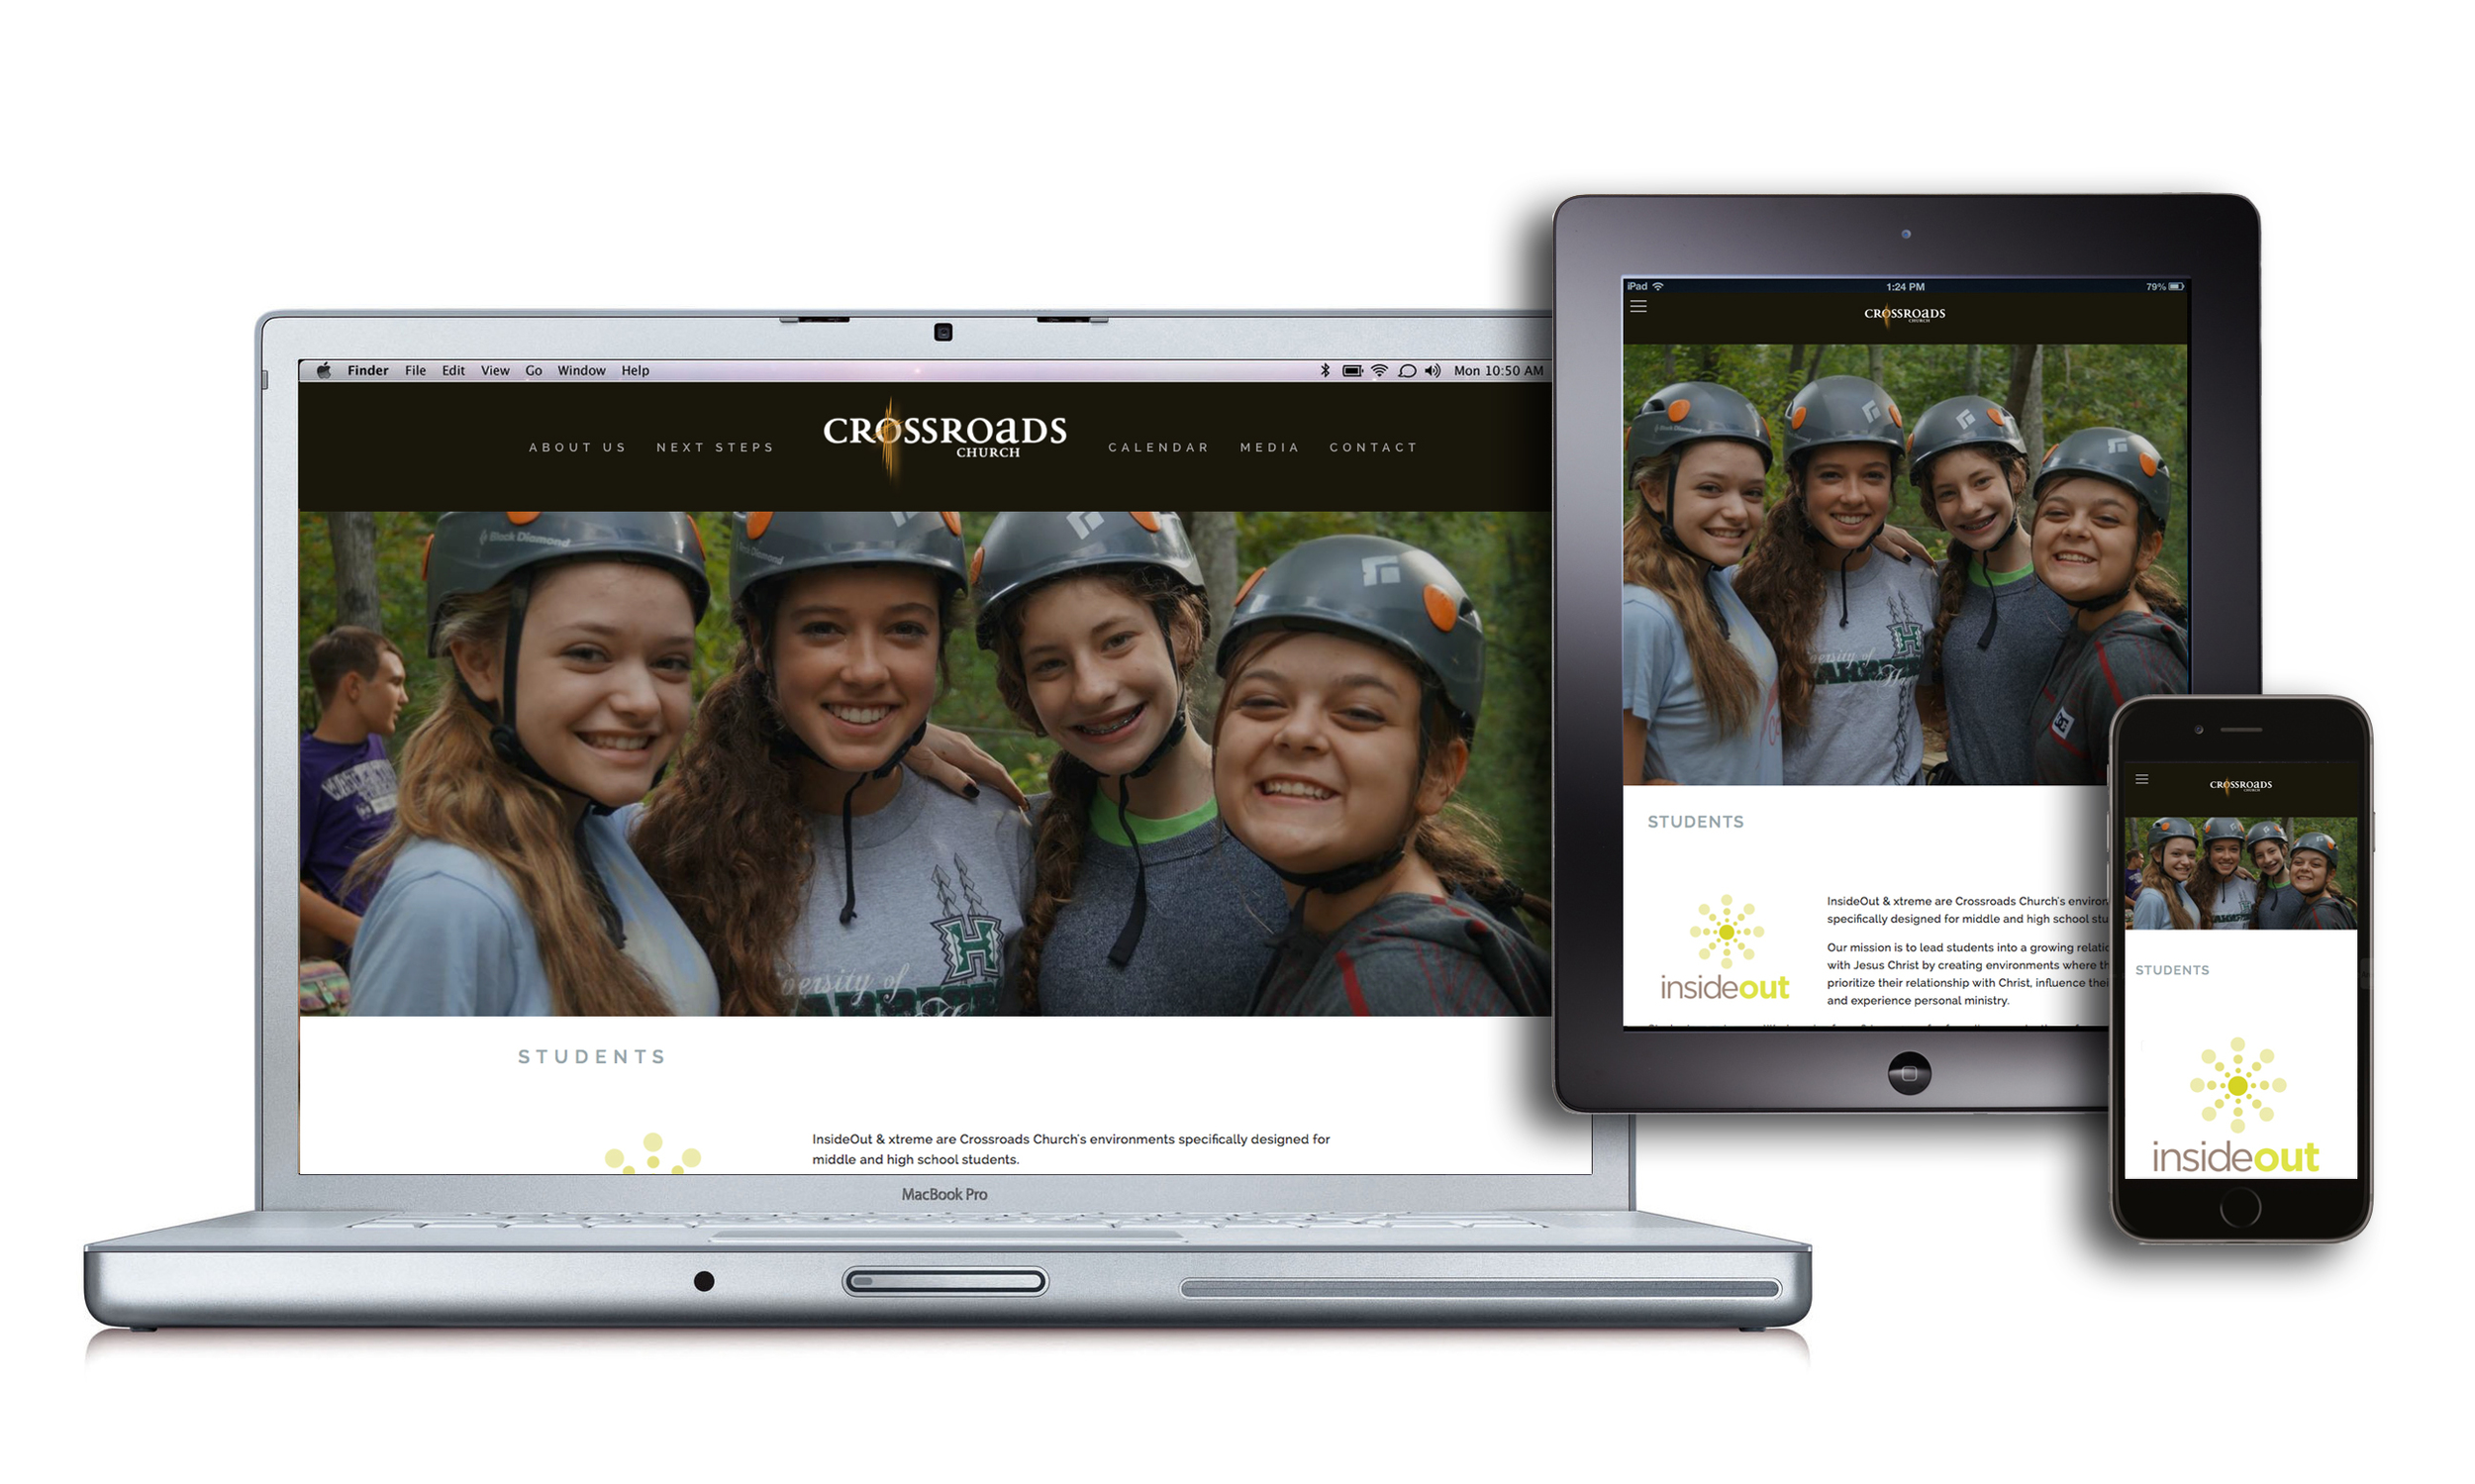 Crossroads church Responsive Website Design